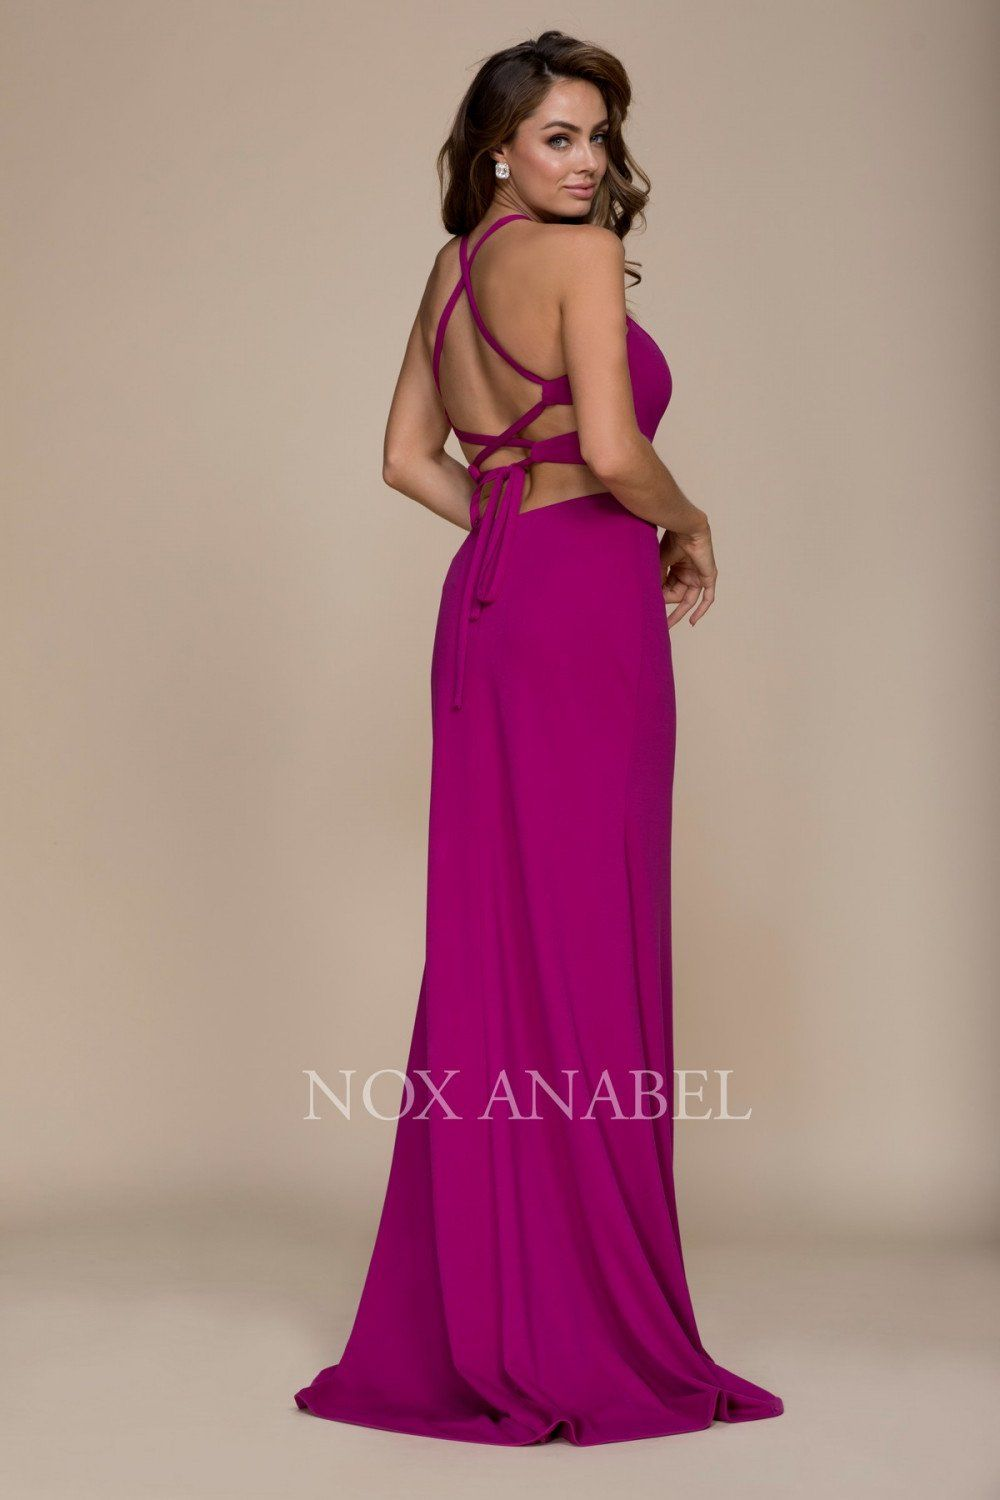 527decfed3c36 Long Open Back Cutout Prom Dress Evening Gown - The Dress Outlet Nox Anabel